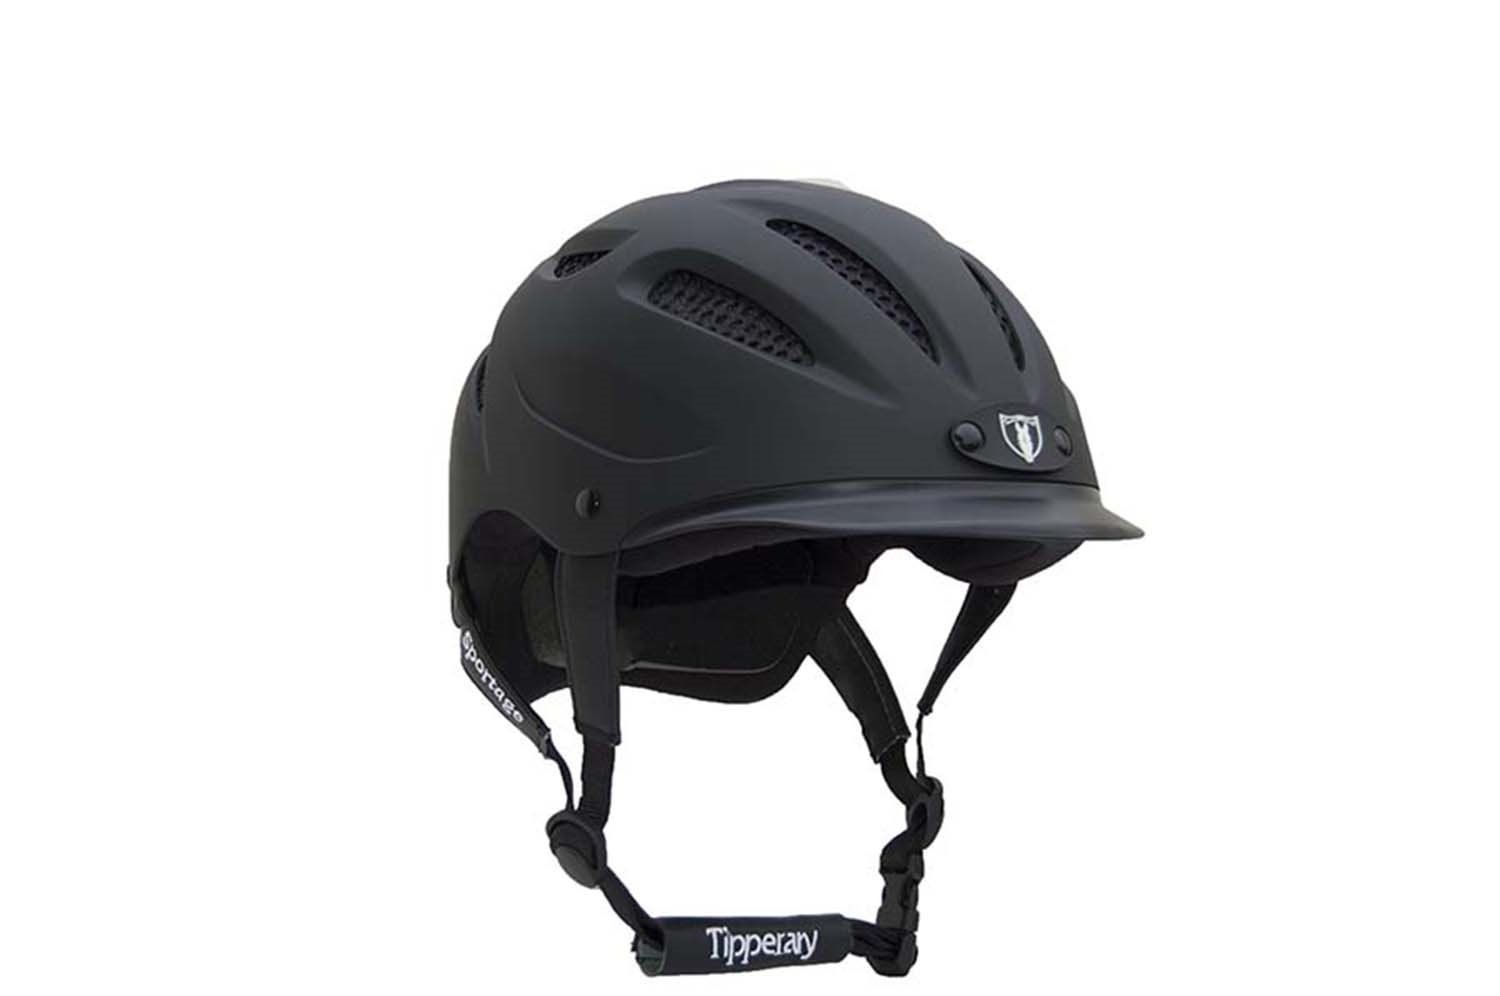 Tipperary Sportage 8500 Riding Helmet Black Small by Tipperary